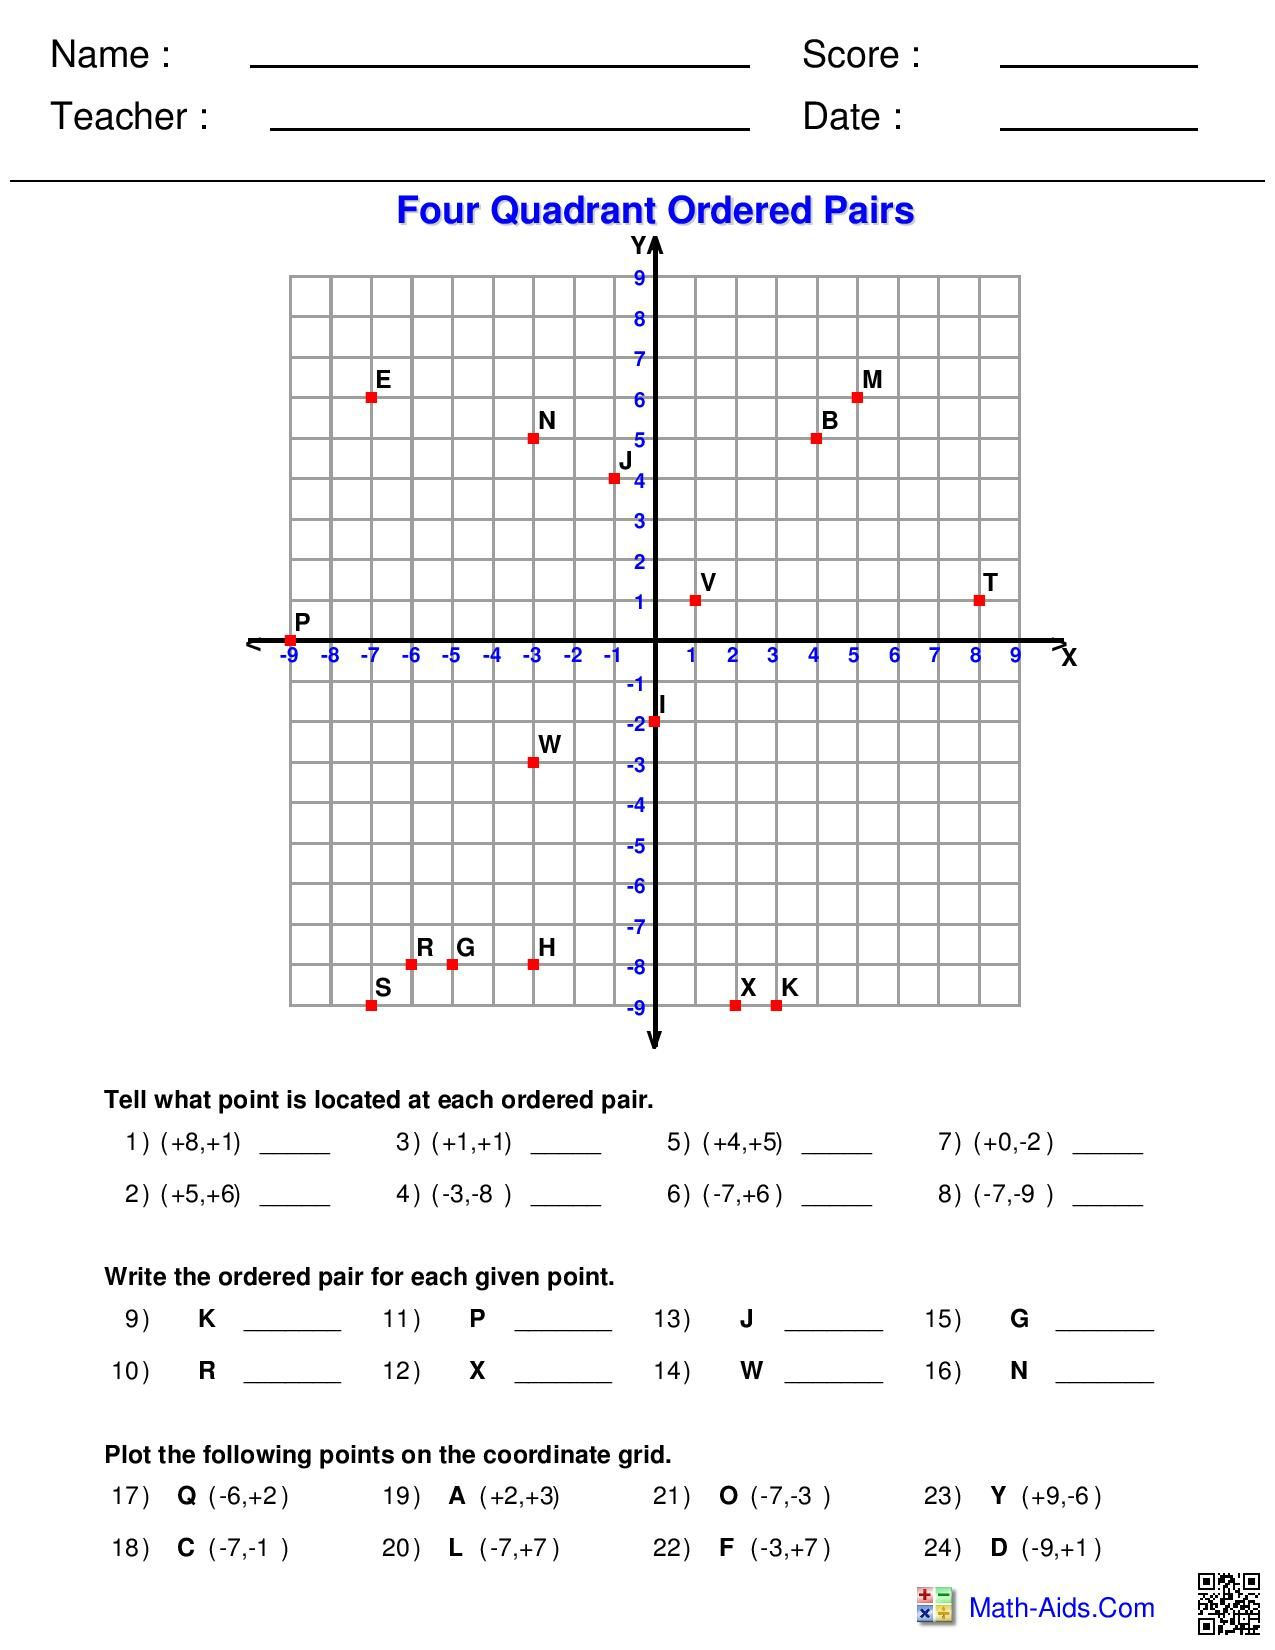 Four Quadrant Ordered Pairs Worksheet | math in 2018 | Pinterest ...